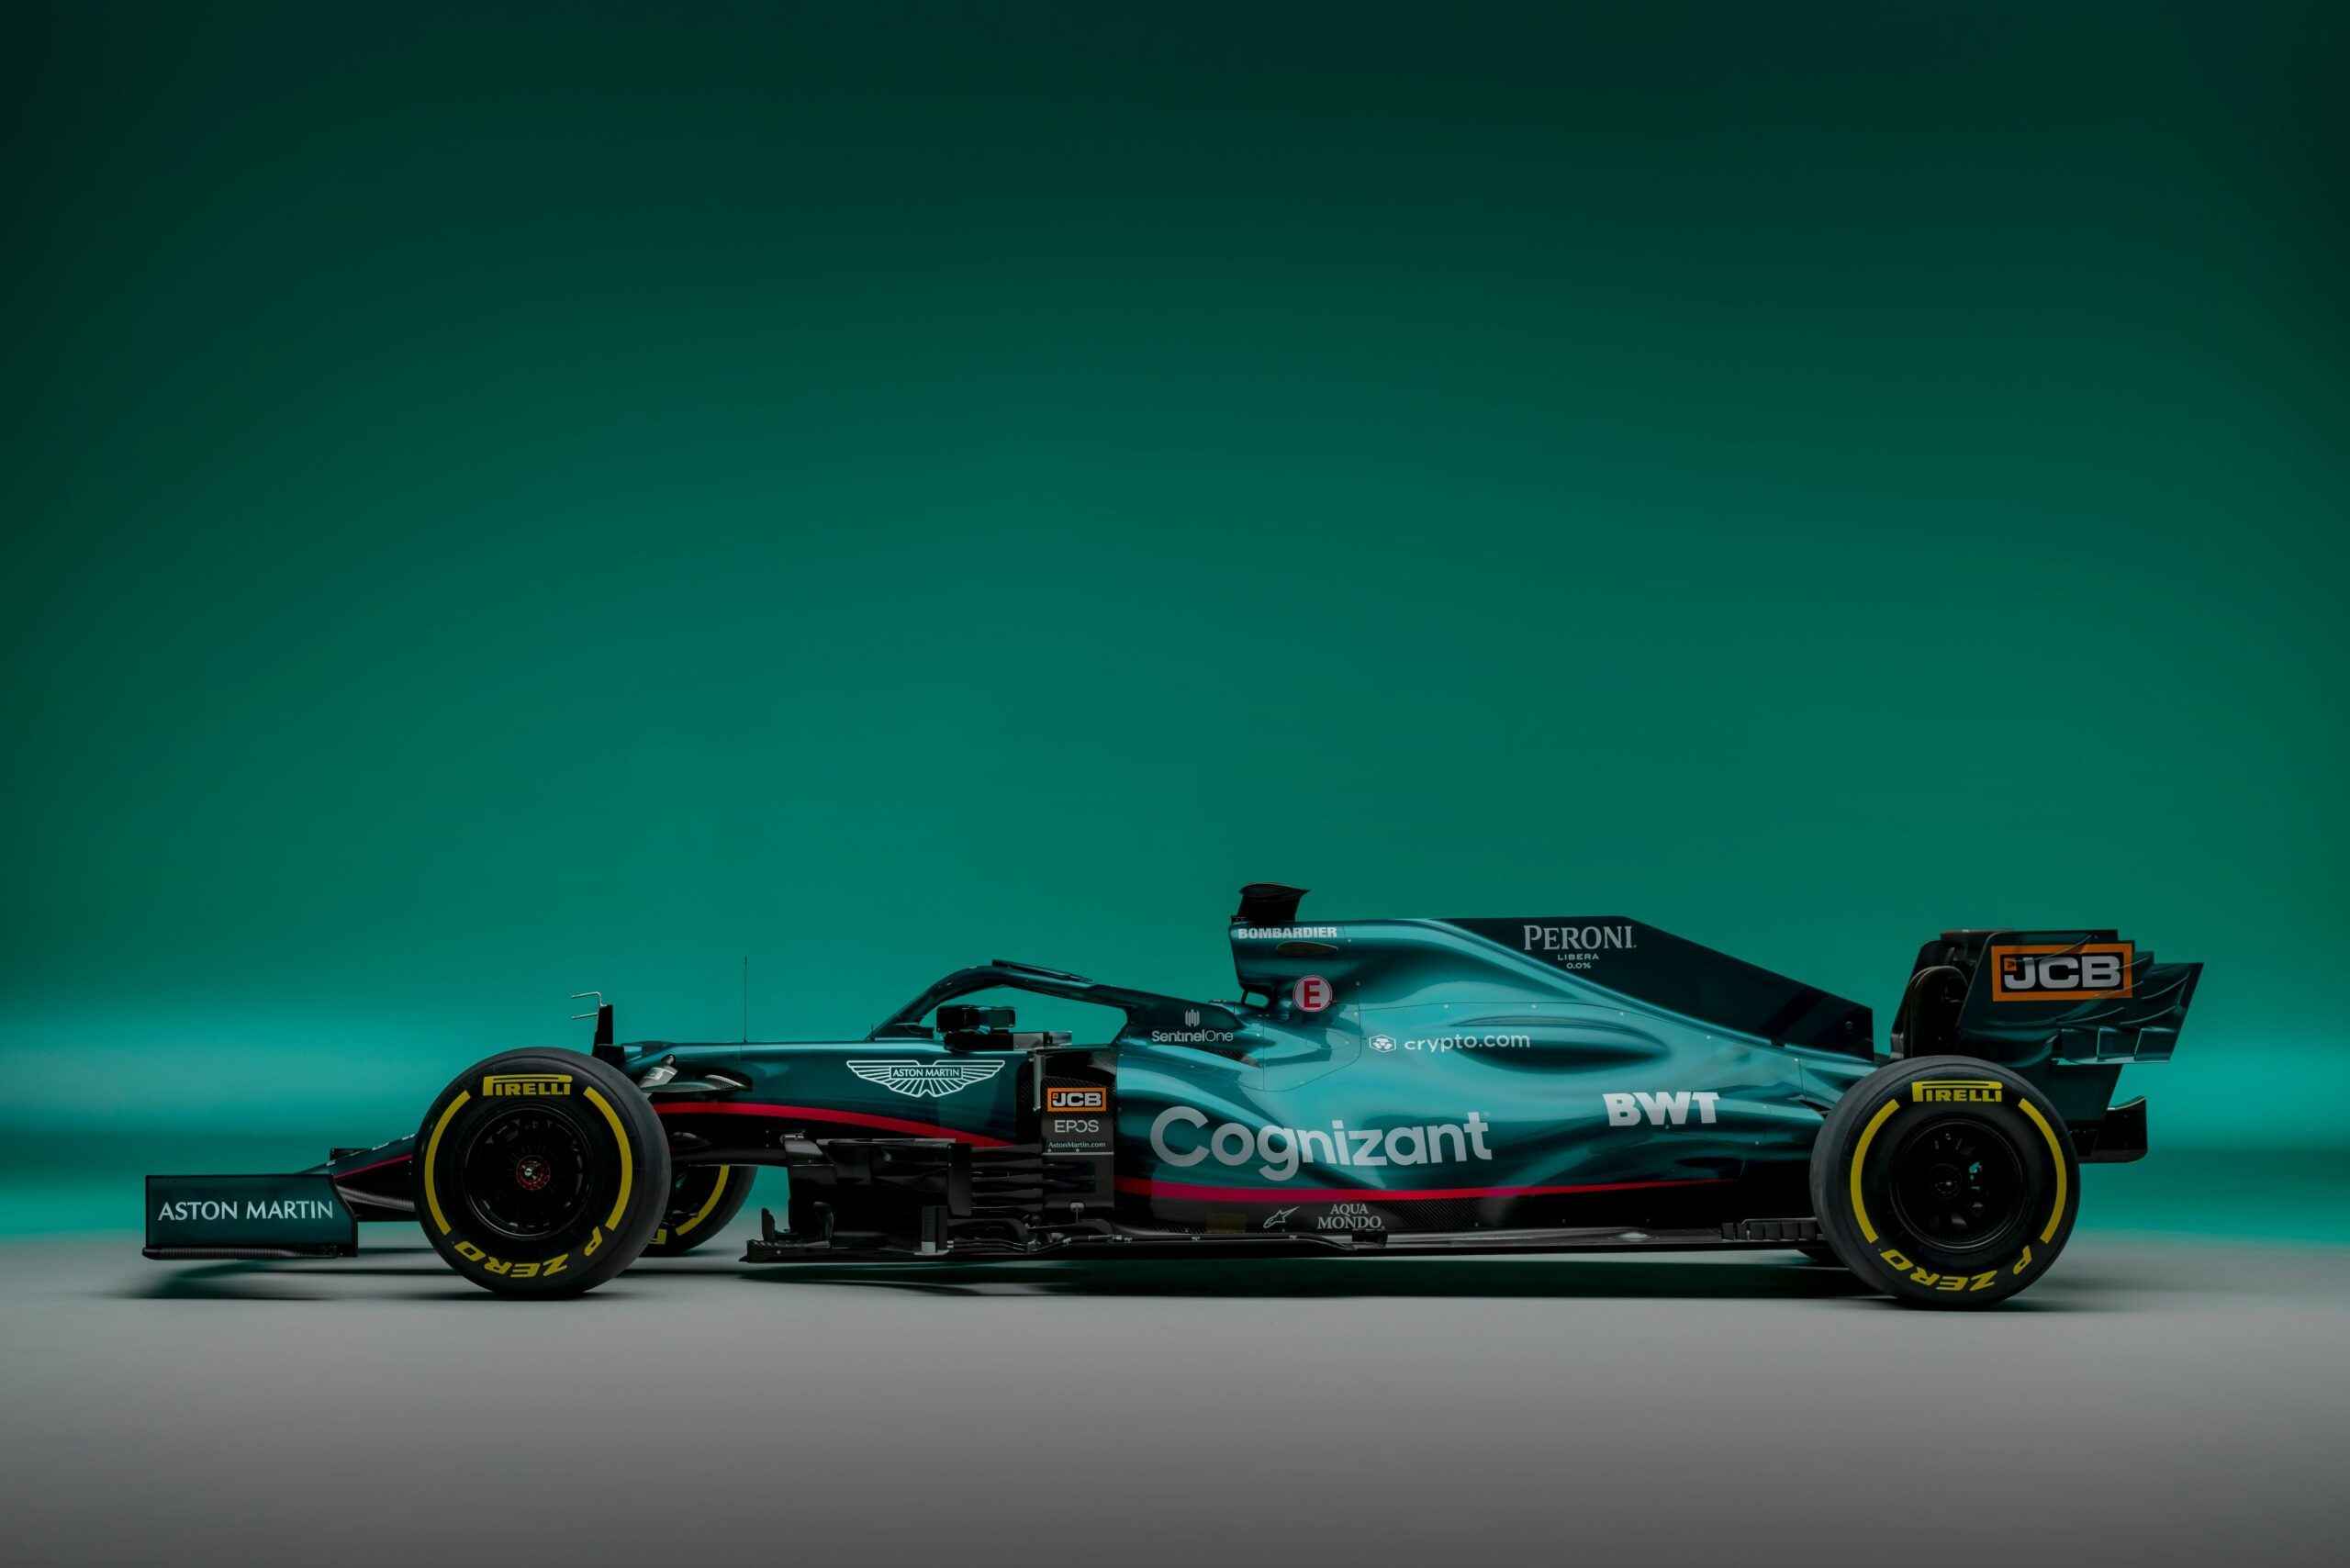 """Featured image for """"F1: Aston Martin reveal striking green livery"""""""